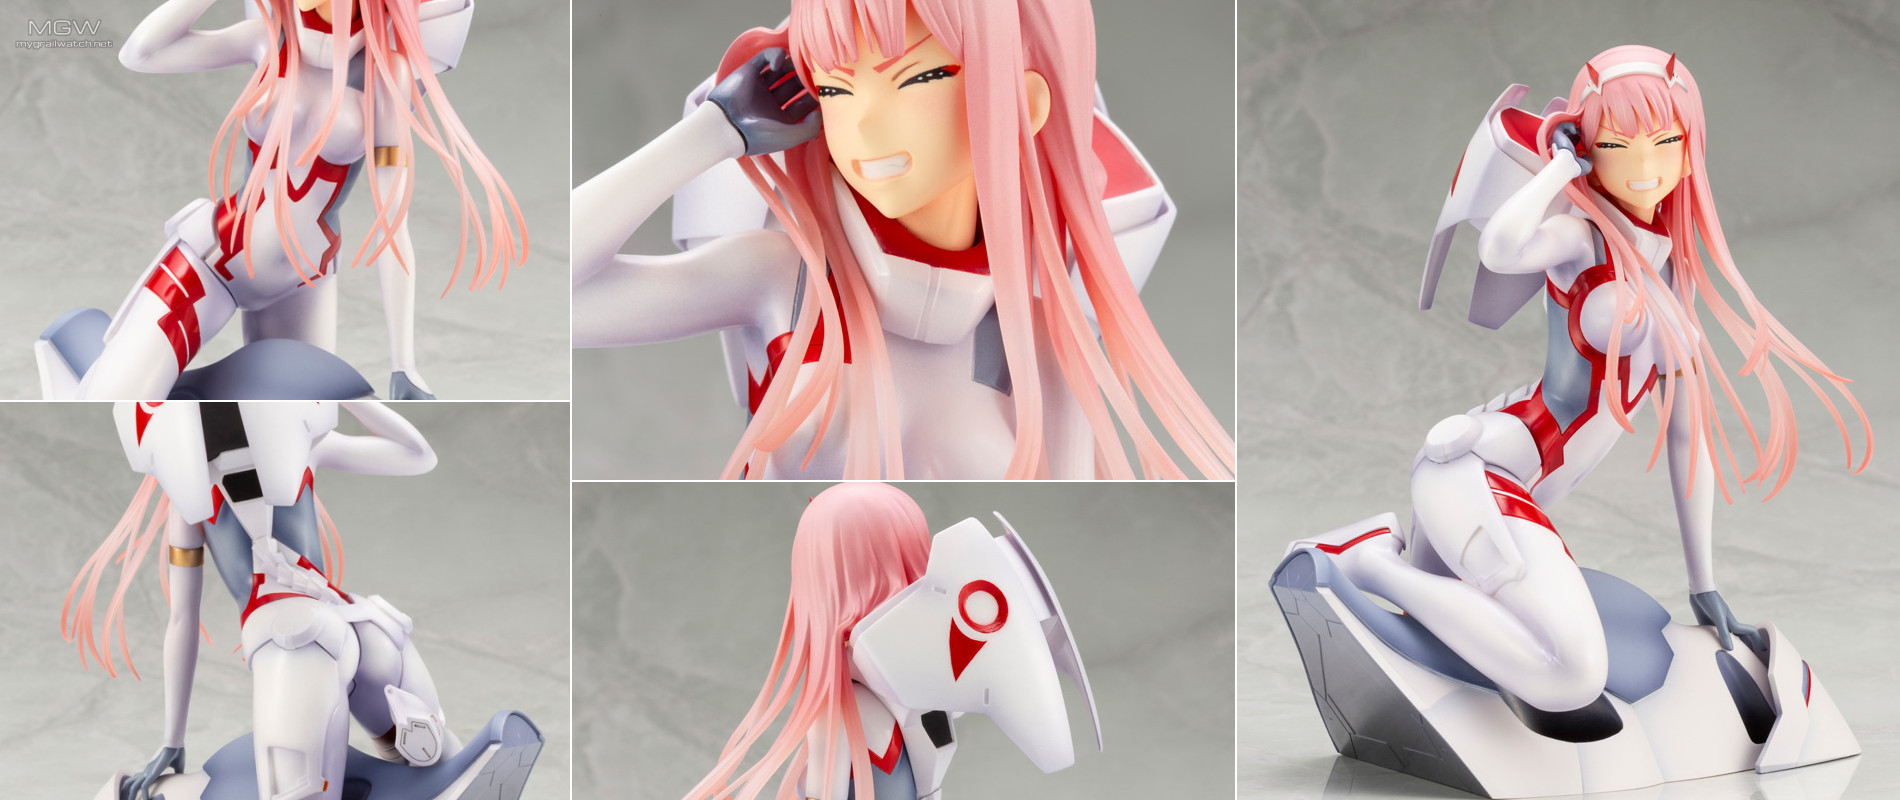 Zero Two The 13th Unit Ver. by Kotobukiya from DARLING in the FRANXX